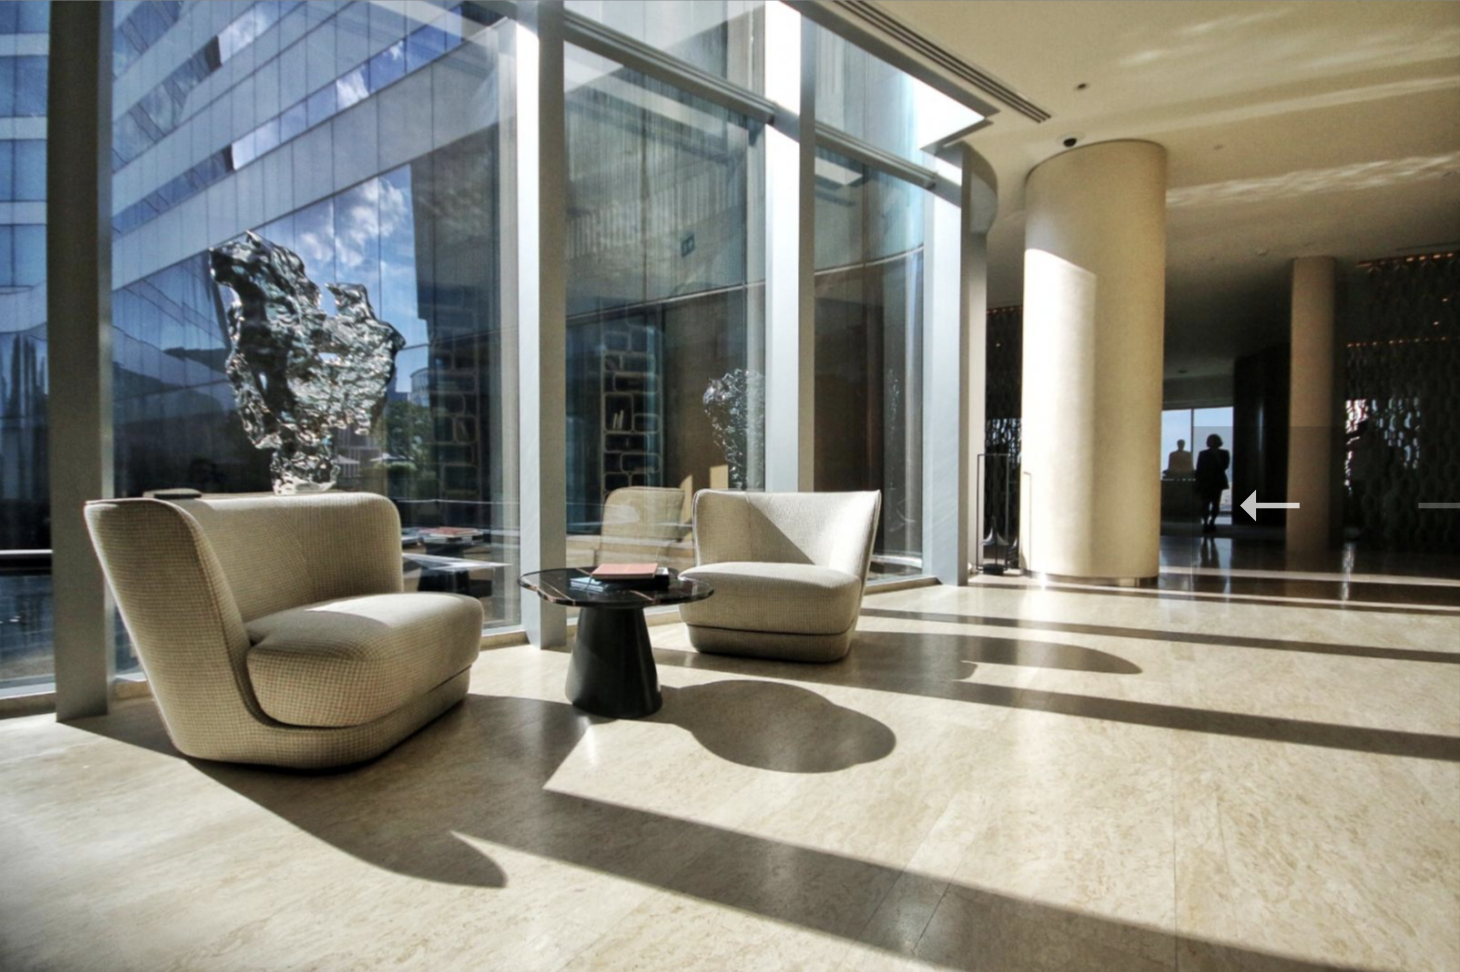 Hotel Lobbies and Waiting Spaces: A List Of 20 Modern Armchairs  modern armchairs Hotel Lobbies And Waiting Spaces: A List Of 20 Modern Armchairs Hotel Lobbies 14